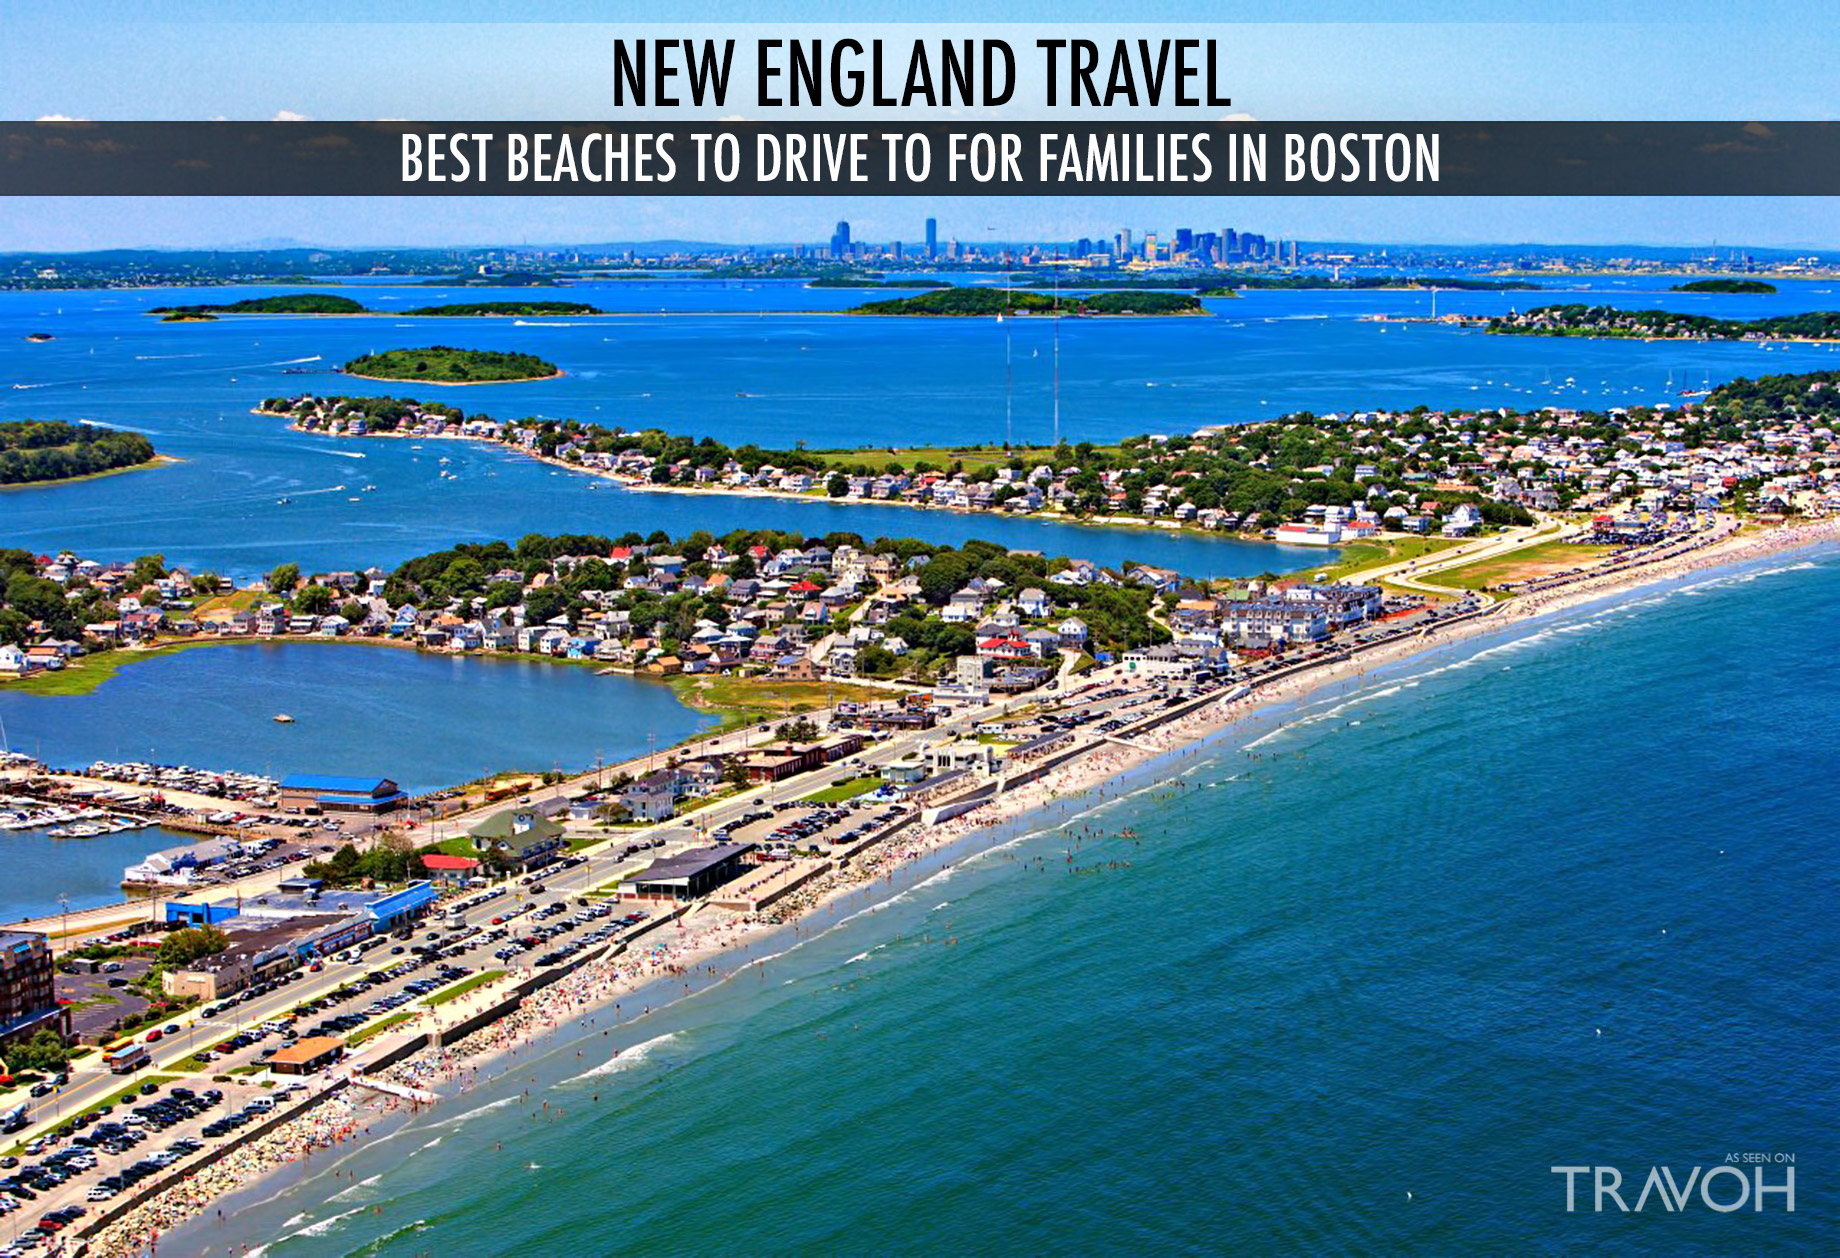 New England Travel - Best Beaches to Drive to for Families in Boston